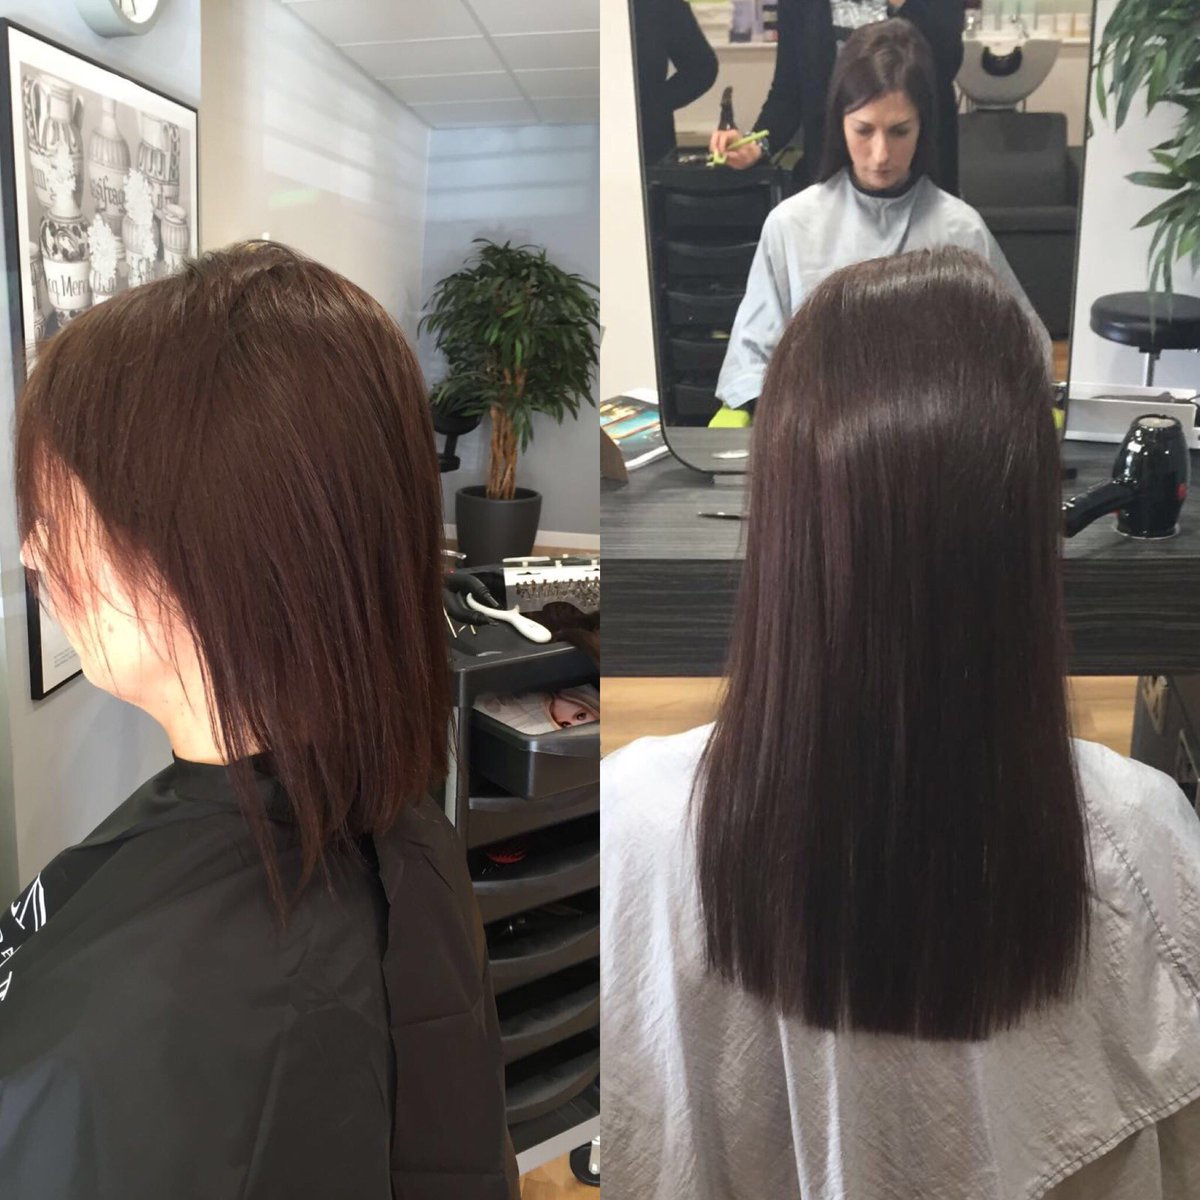 Limelight hair hairlimelight twitter balmain hair extensions half price fitting until 310316picitterhj3zsxhhgu pmusecretfo Image collections